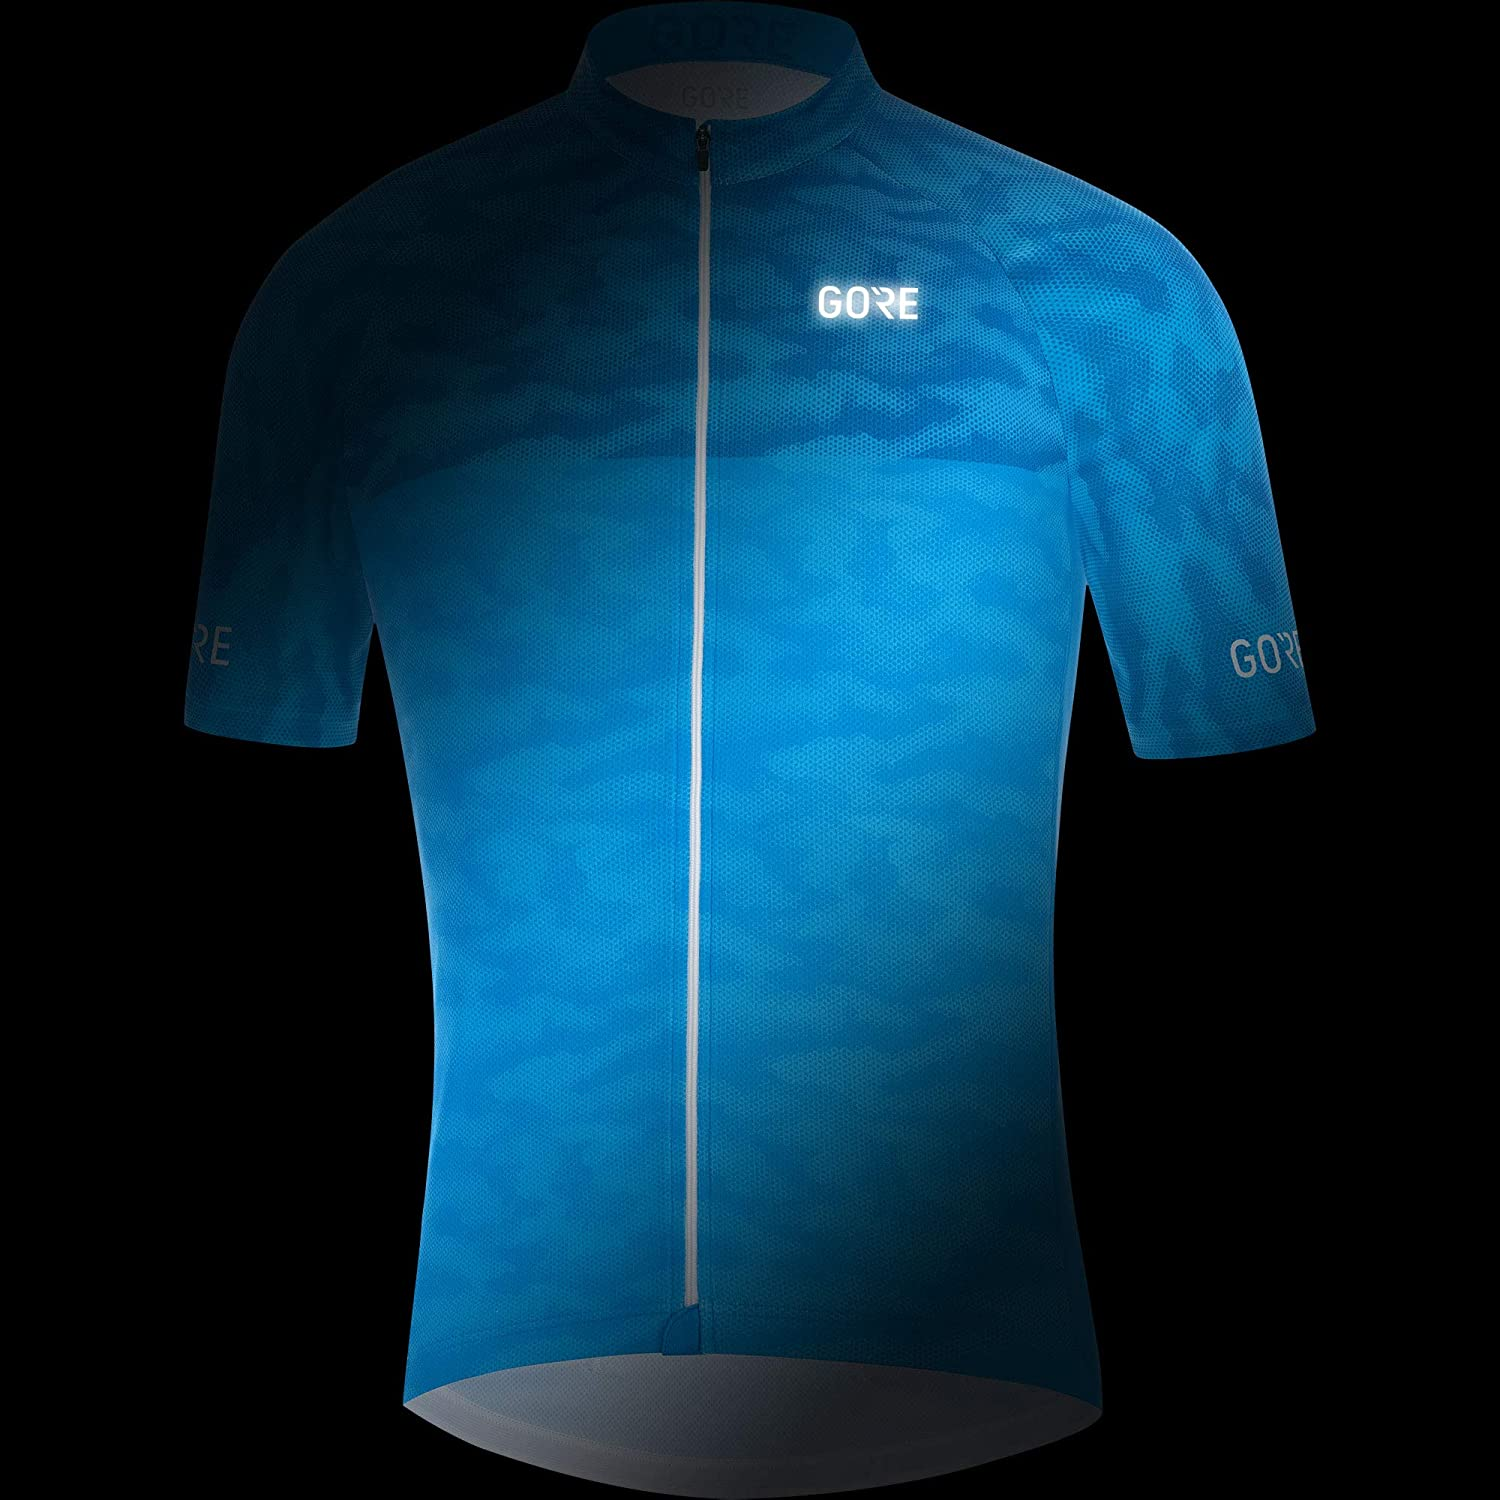 GORE Wear Mens Breathable Cycling Short Sleeve Jersey 21ad5cf10